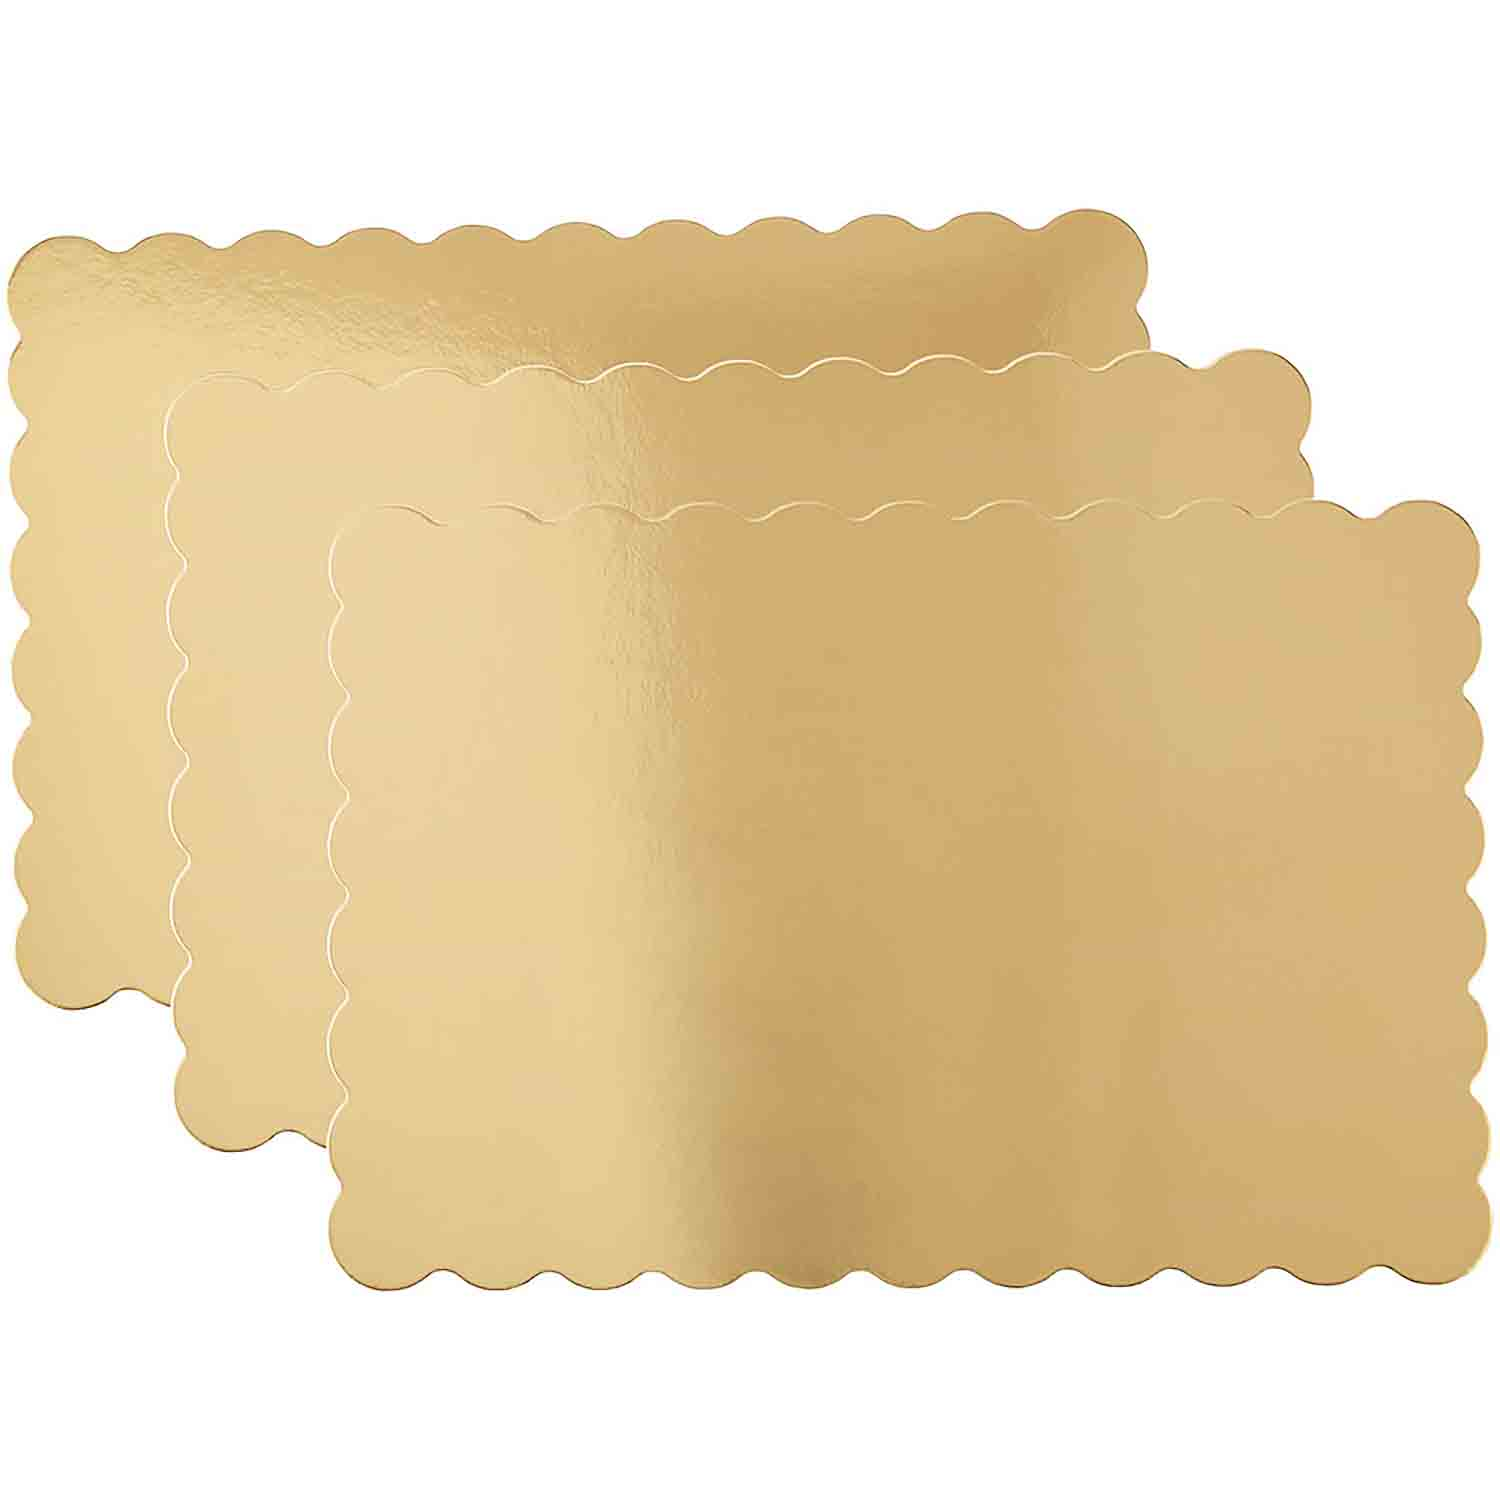 "13"" x 19"" Gold Half Sheet Cake Cardboards"